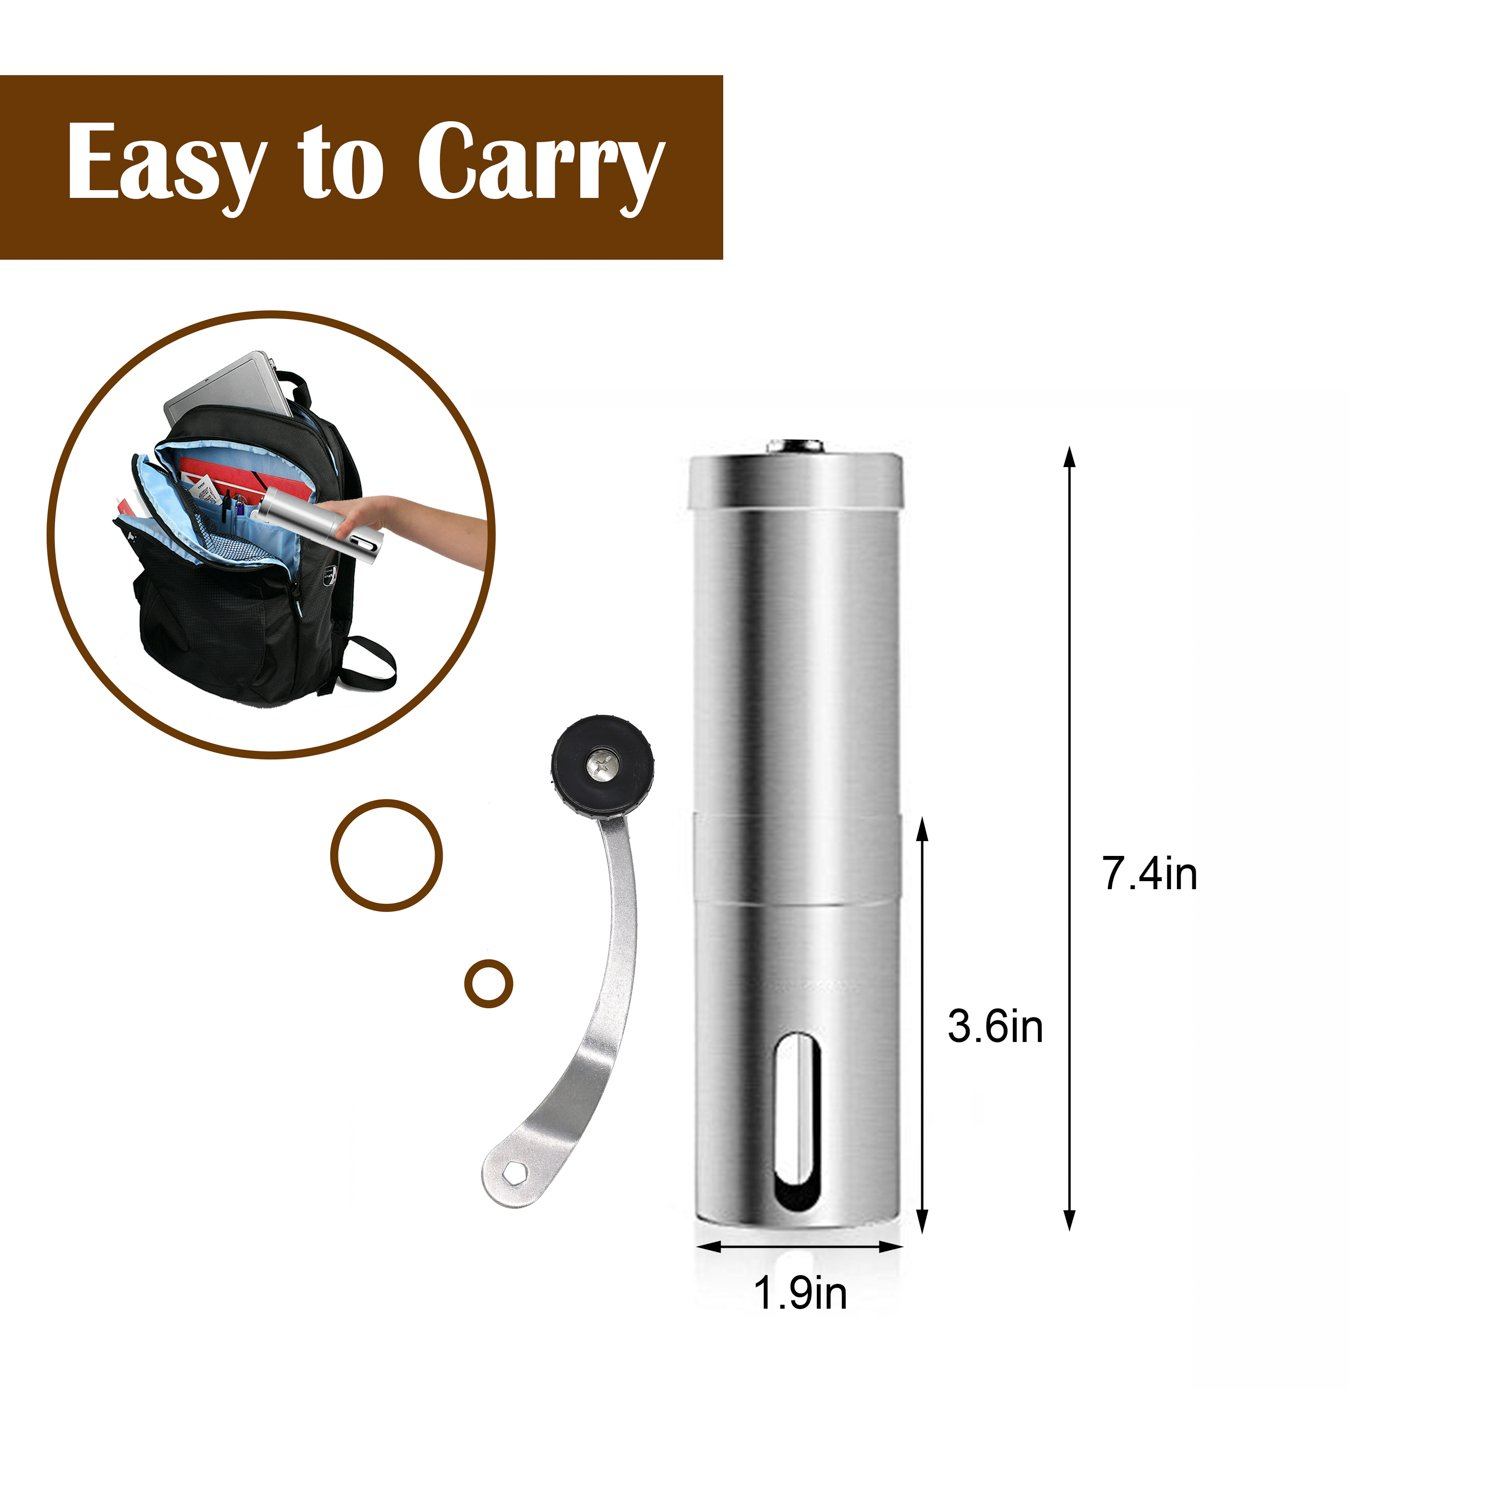 Coffee Grinder, Aessdcan Manual Coffee Mill, Mini Portable Home Kitchen Travel Stainless Steel Coffee Bean Grinder with Adjustable Ceramic Core by Aessdcan (Image #5)